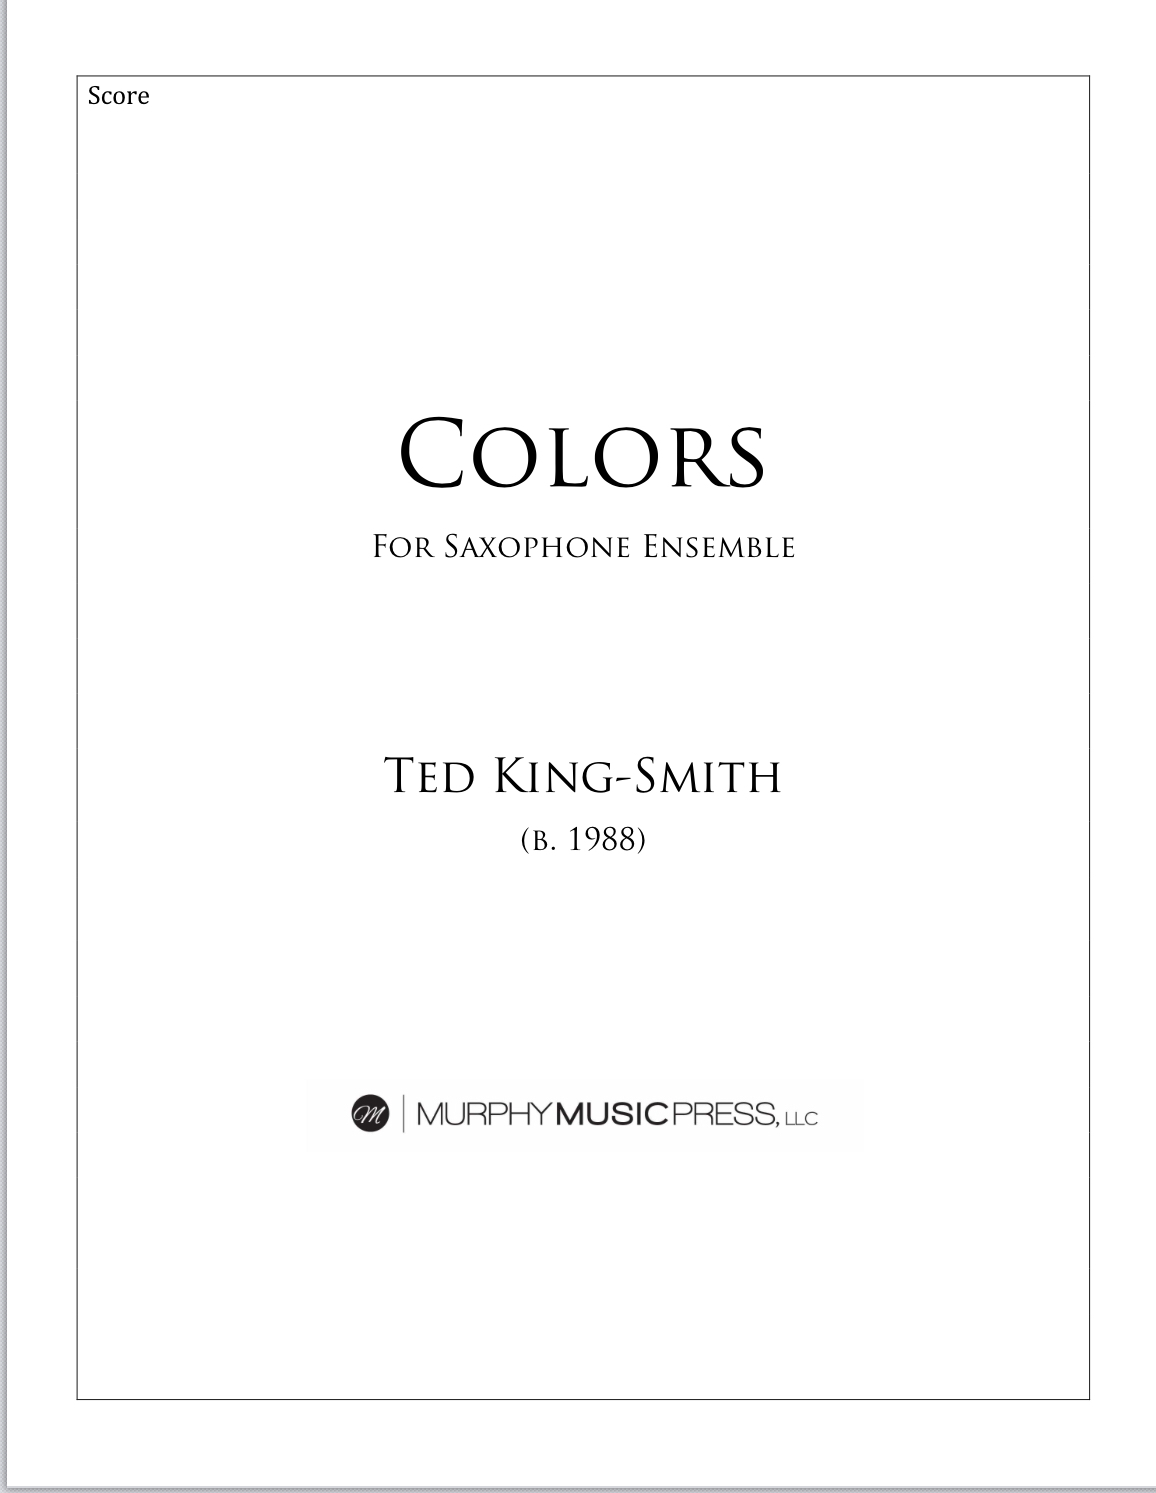 Colors For Saxophone Ensemble by Ted King-Smith